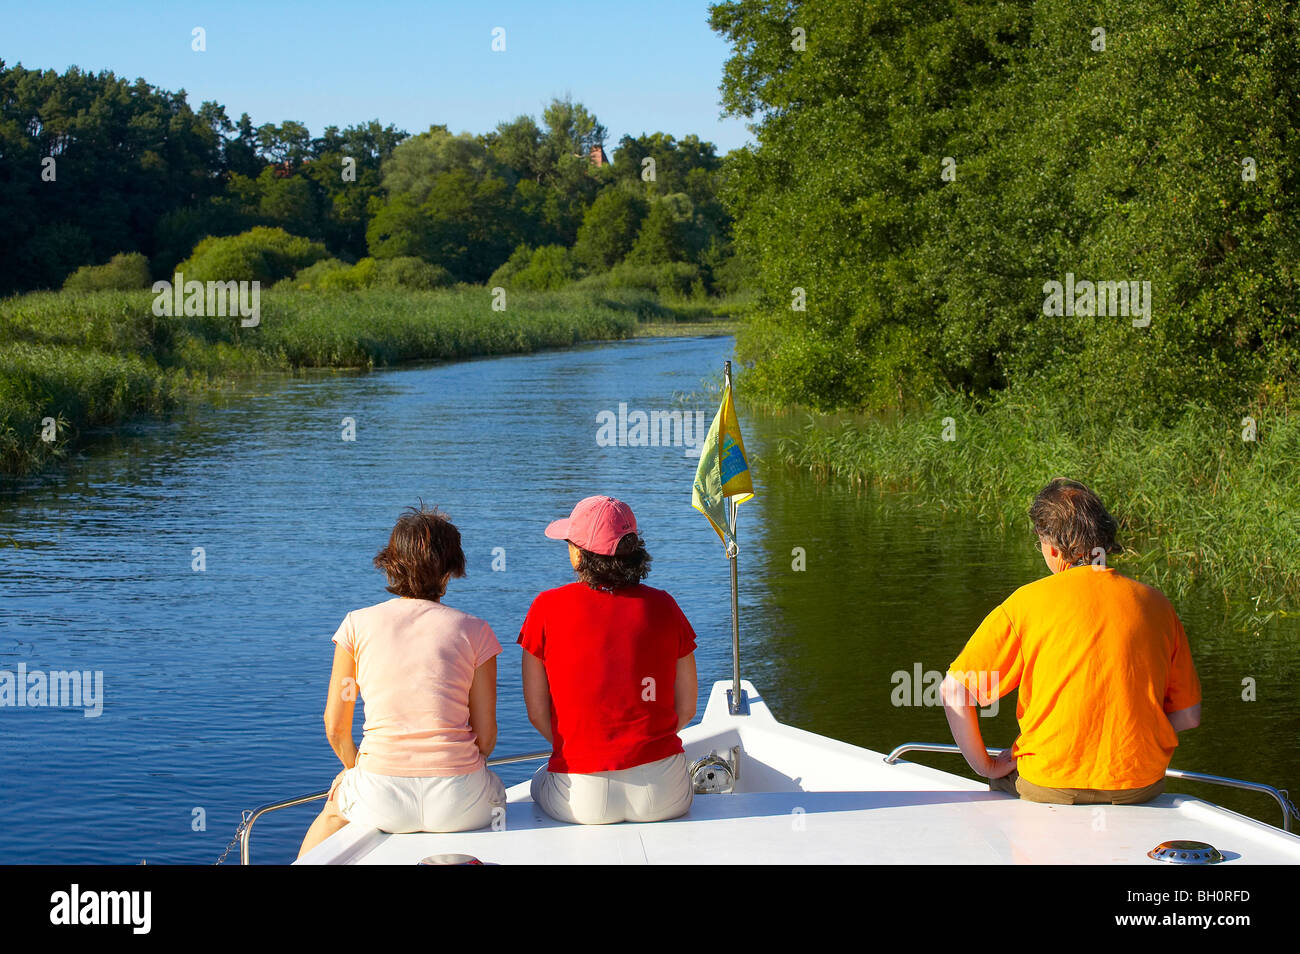 with the houseboat  on the 'Templiner Gewaesser', Brandenburg, Germany, Europe - Stock Image